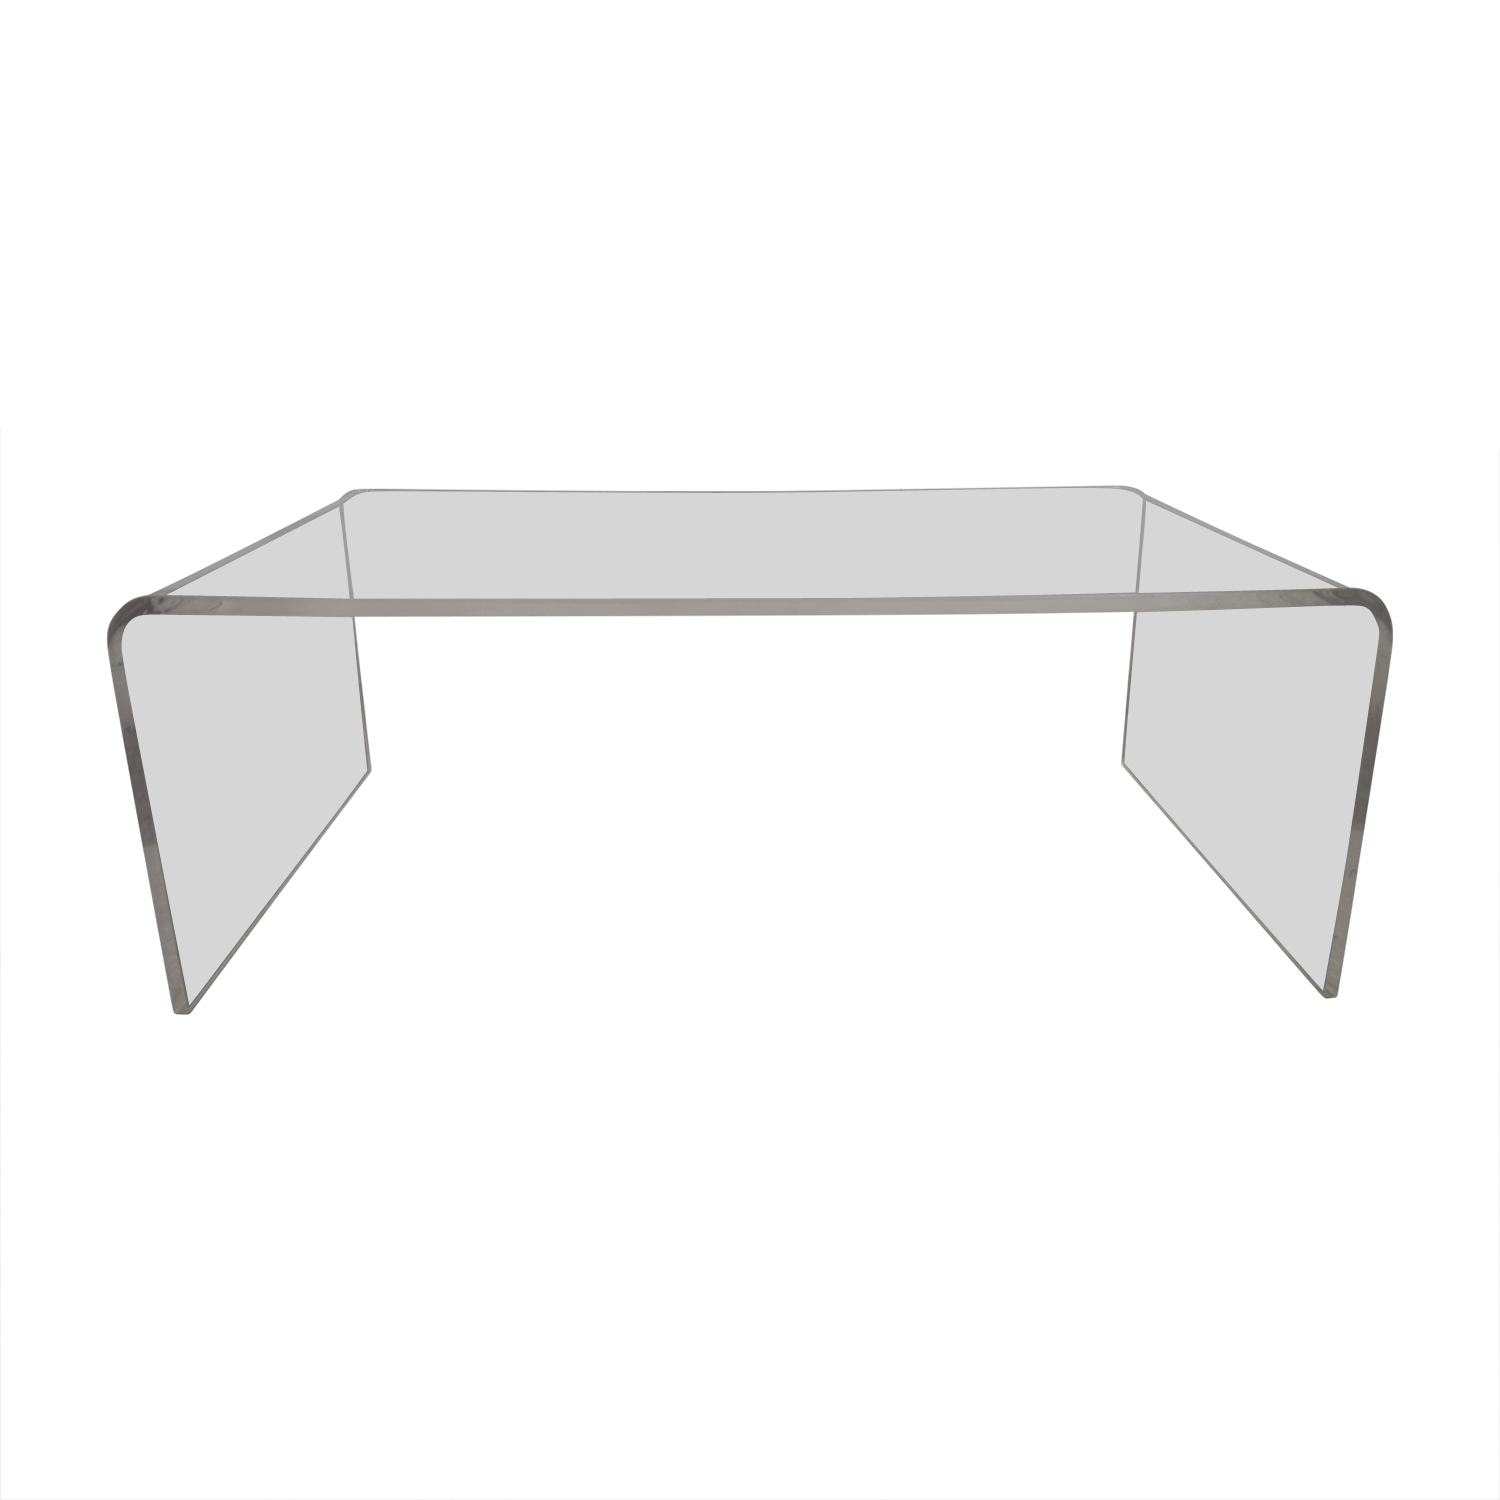 60% Off – Cb2 Cb2 Peekaboo Acrylic Ghost Tall Coffee Table / Tables Throughout Peekaboo Acrylic Tall Coffee Tables (Gallery 1 of 30)